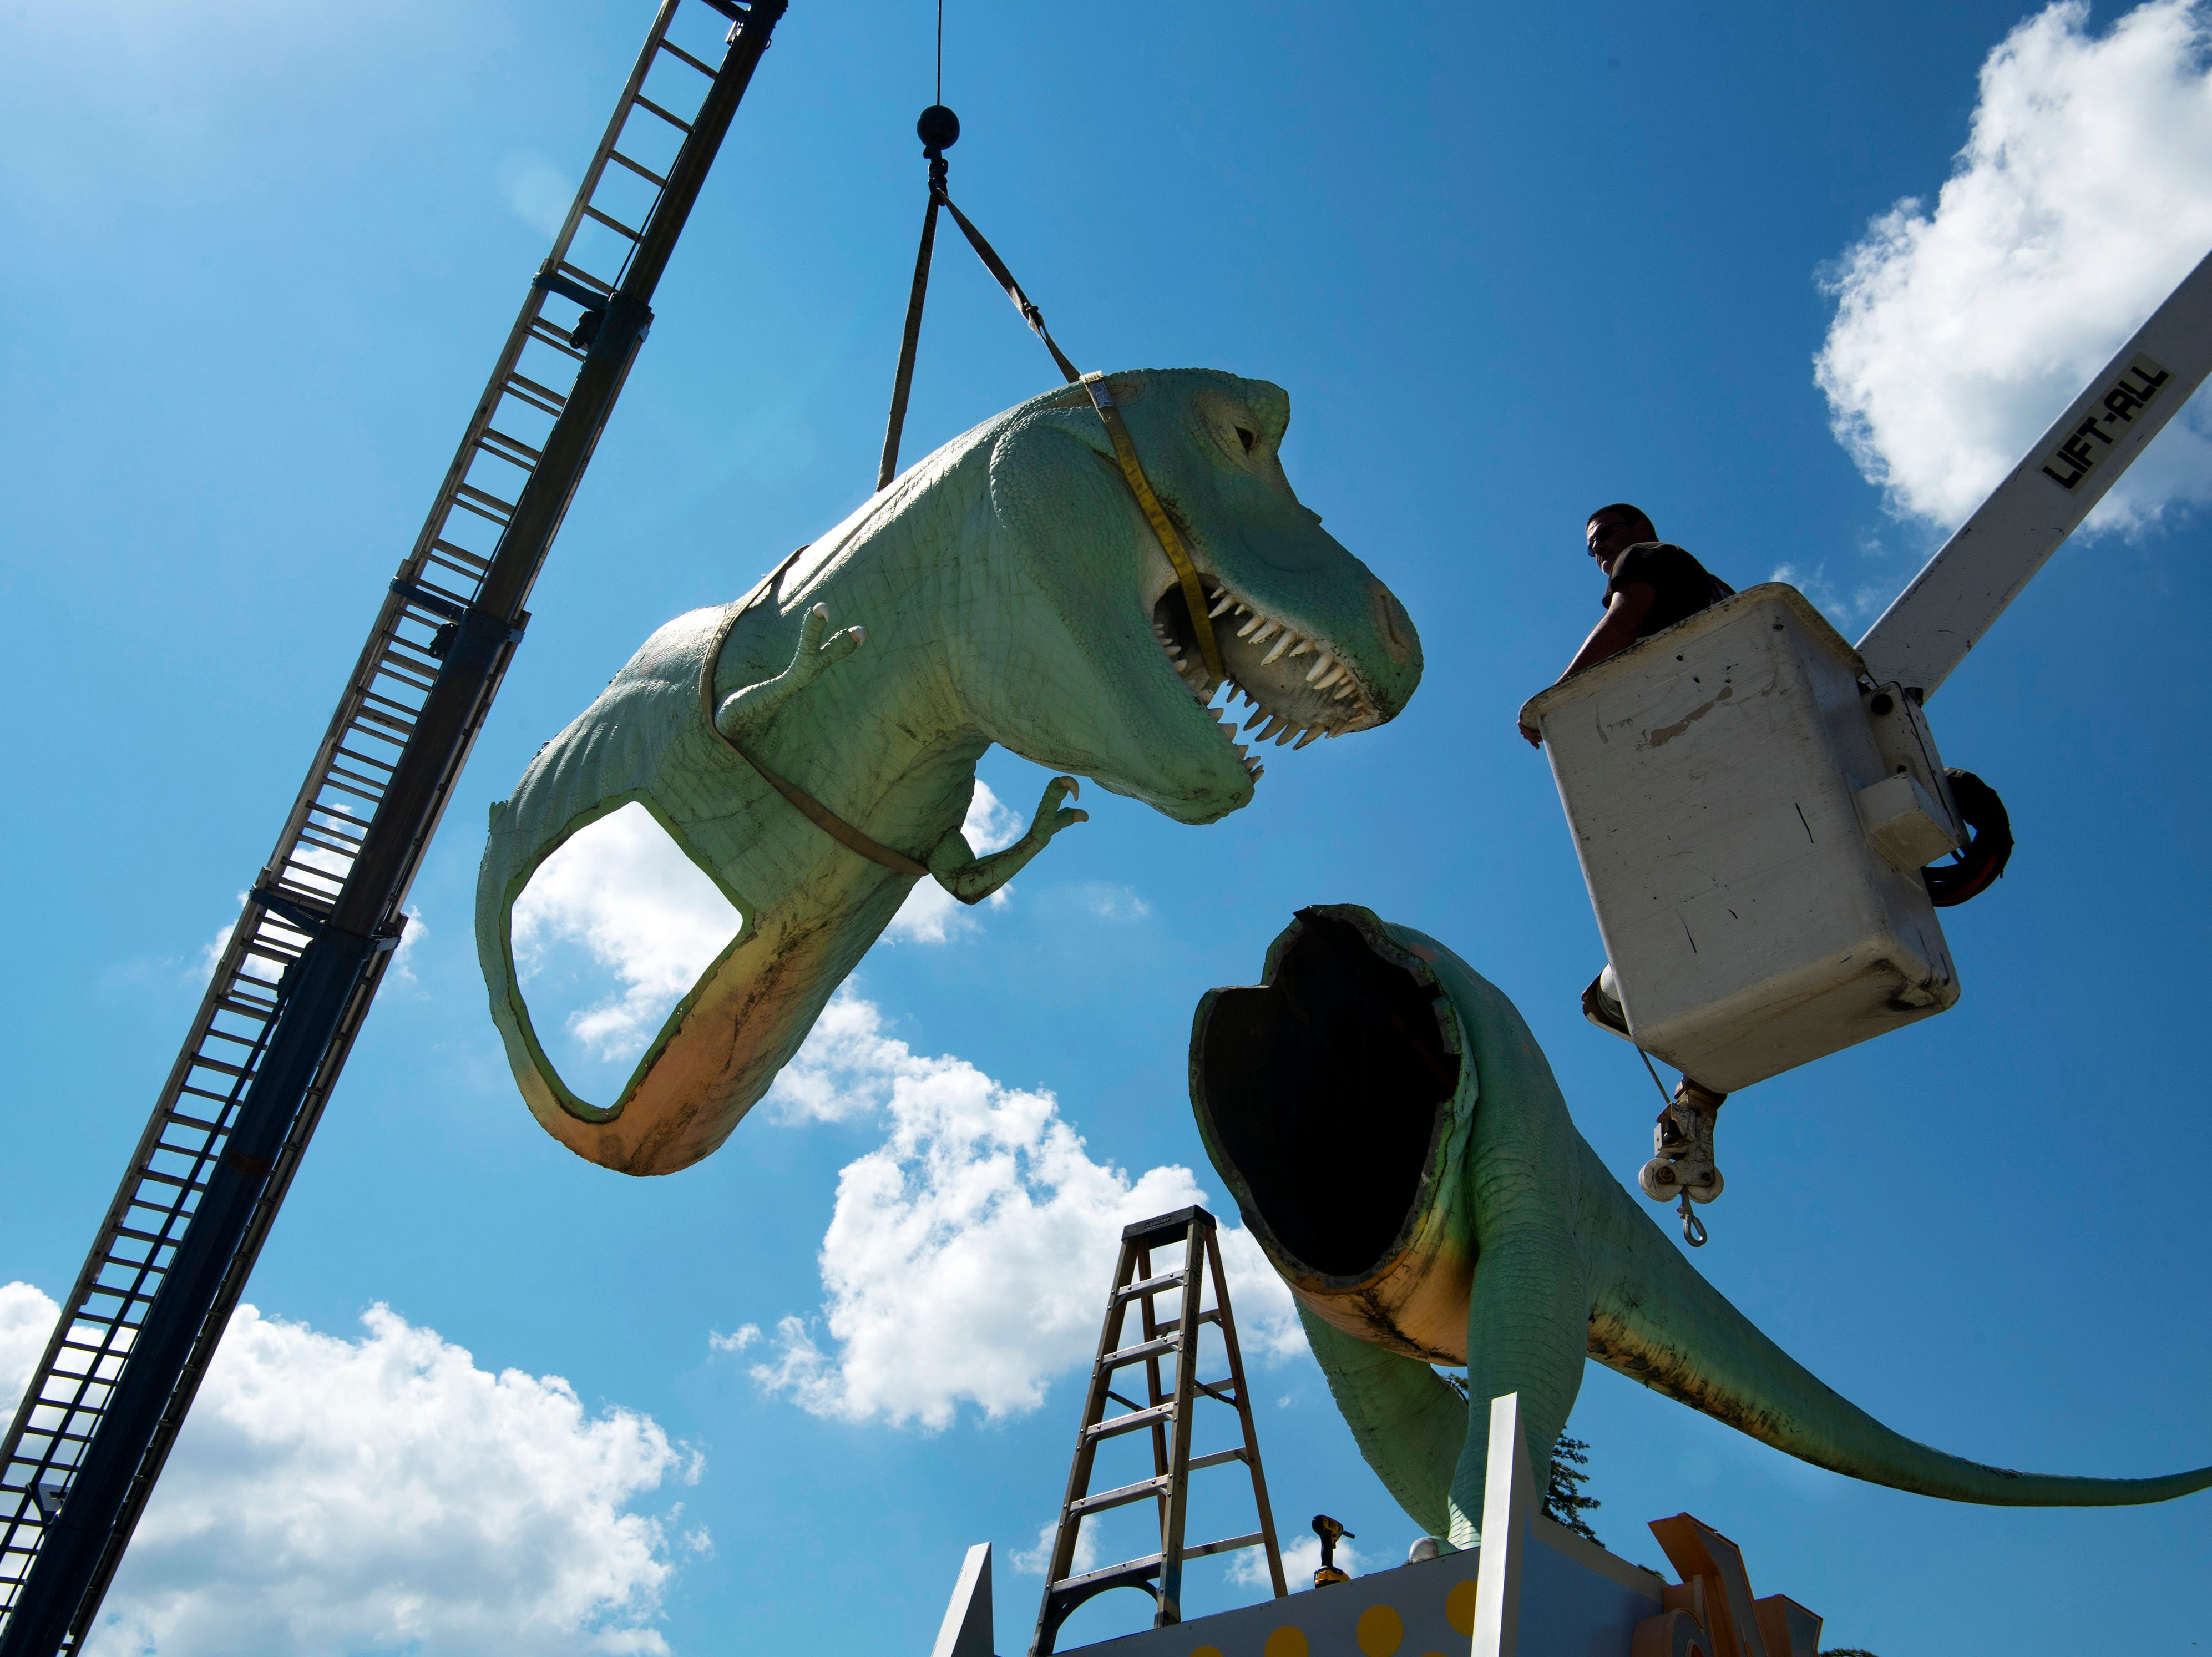 Millie, a Tyrannosaurus Rex dinosaur – and the Koch Family Children's Museum of Evansville's most recognizable face – is disassembled by Bart Meyer, right, and the team from Custom Sign of Newburgh, Ind., Wednesday morning. Millie has perched atop her pedestal at the corner of Locust and Fifth streets for more than a decade and is getting a new paint job. It is unknown where the green T-Rex will reside after her facelift, but cMoe assures us Millie's new home will be easily seen in the Downtown Evansville area.